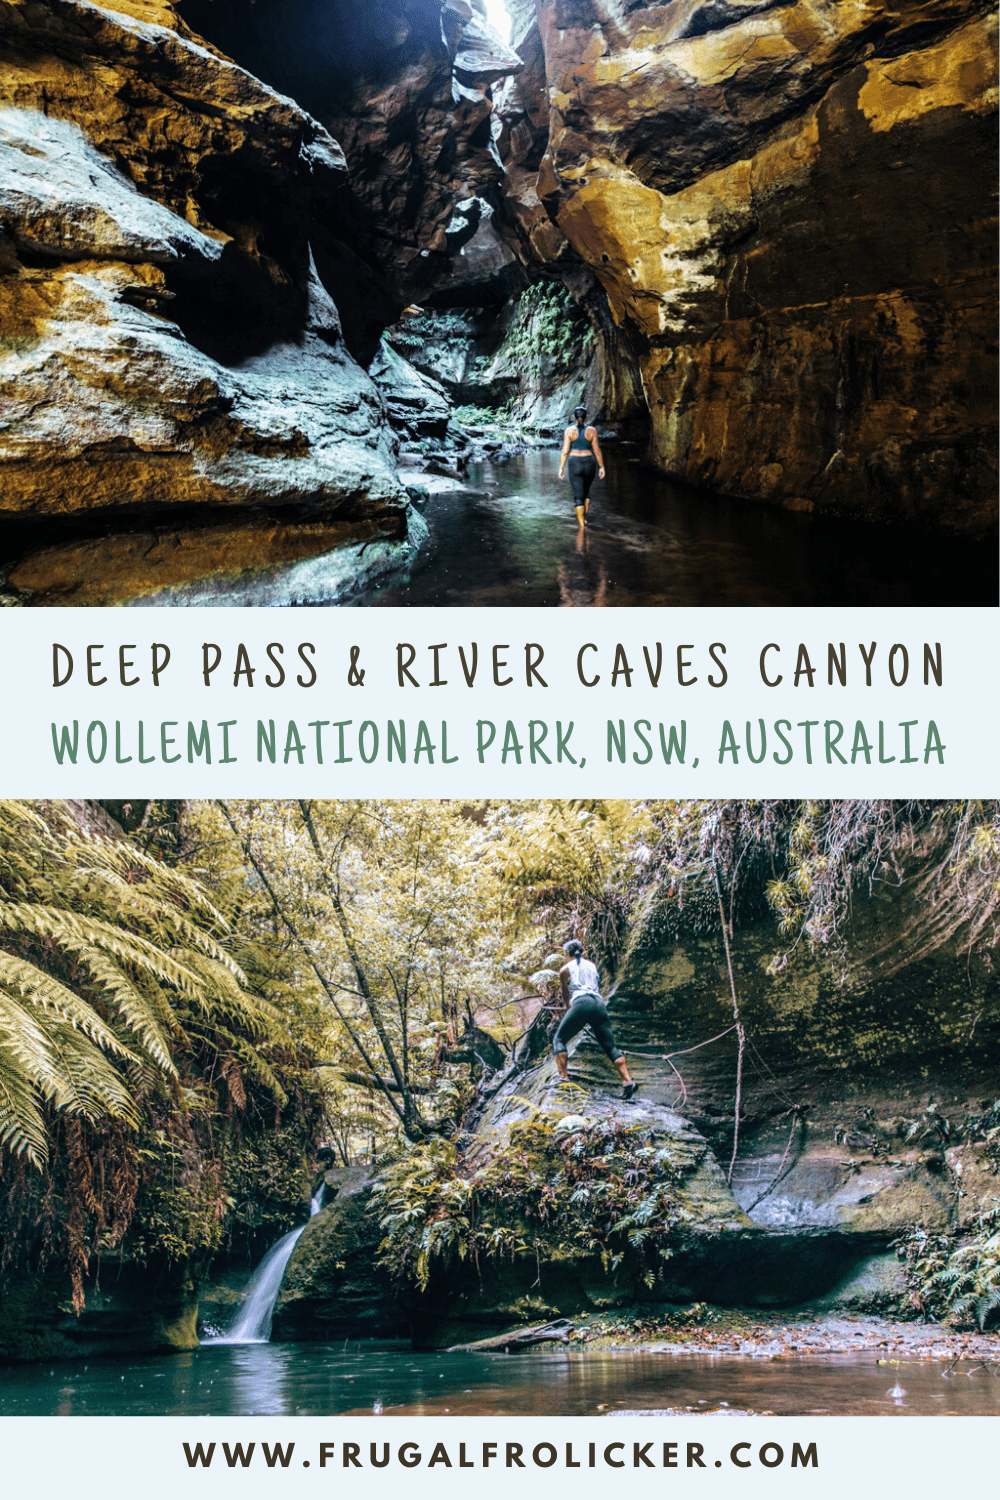 Deep Pass & River Caves Canyon - Wollemi National Park, NSW